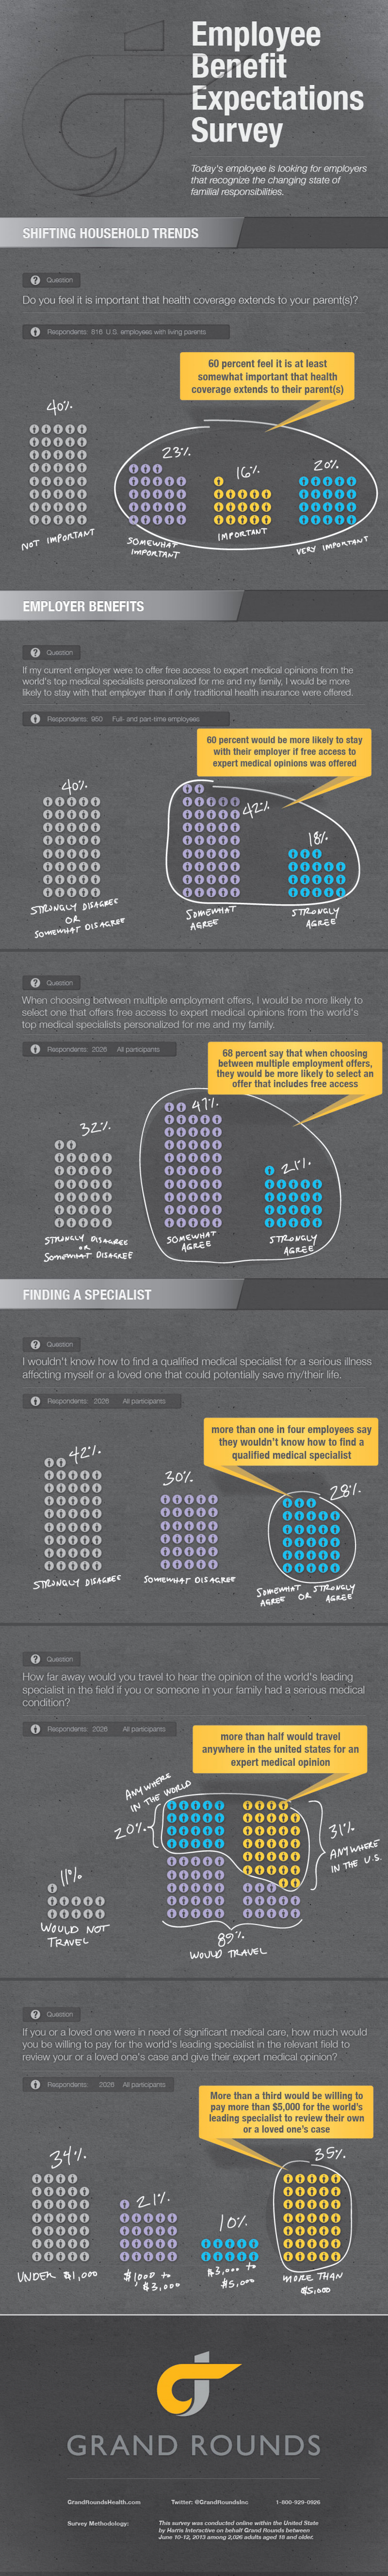 Employee Benefit Expectations Survey Infographic